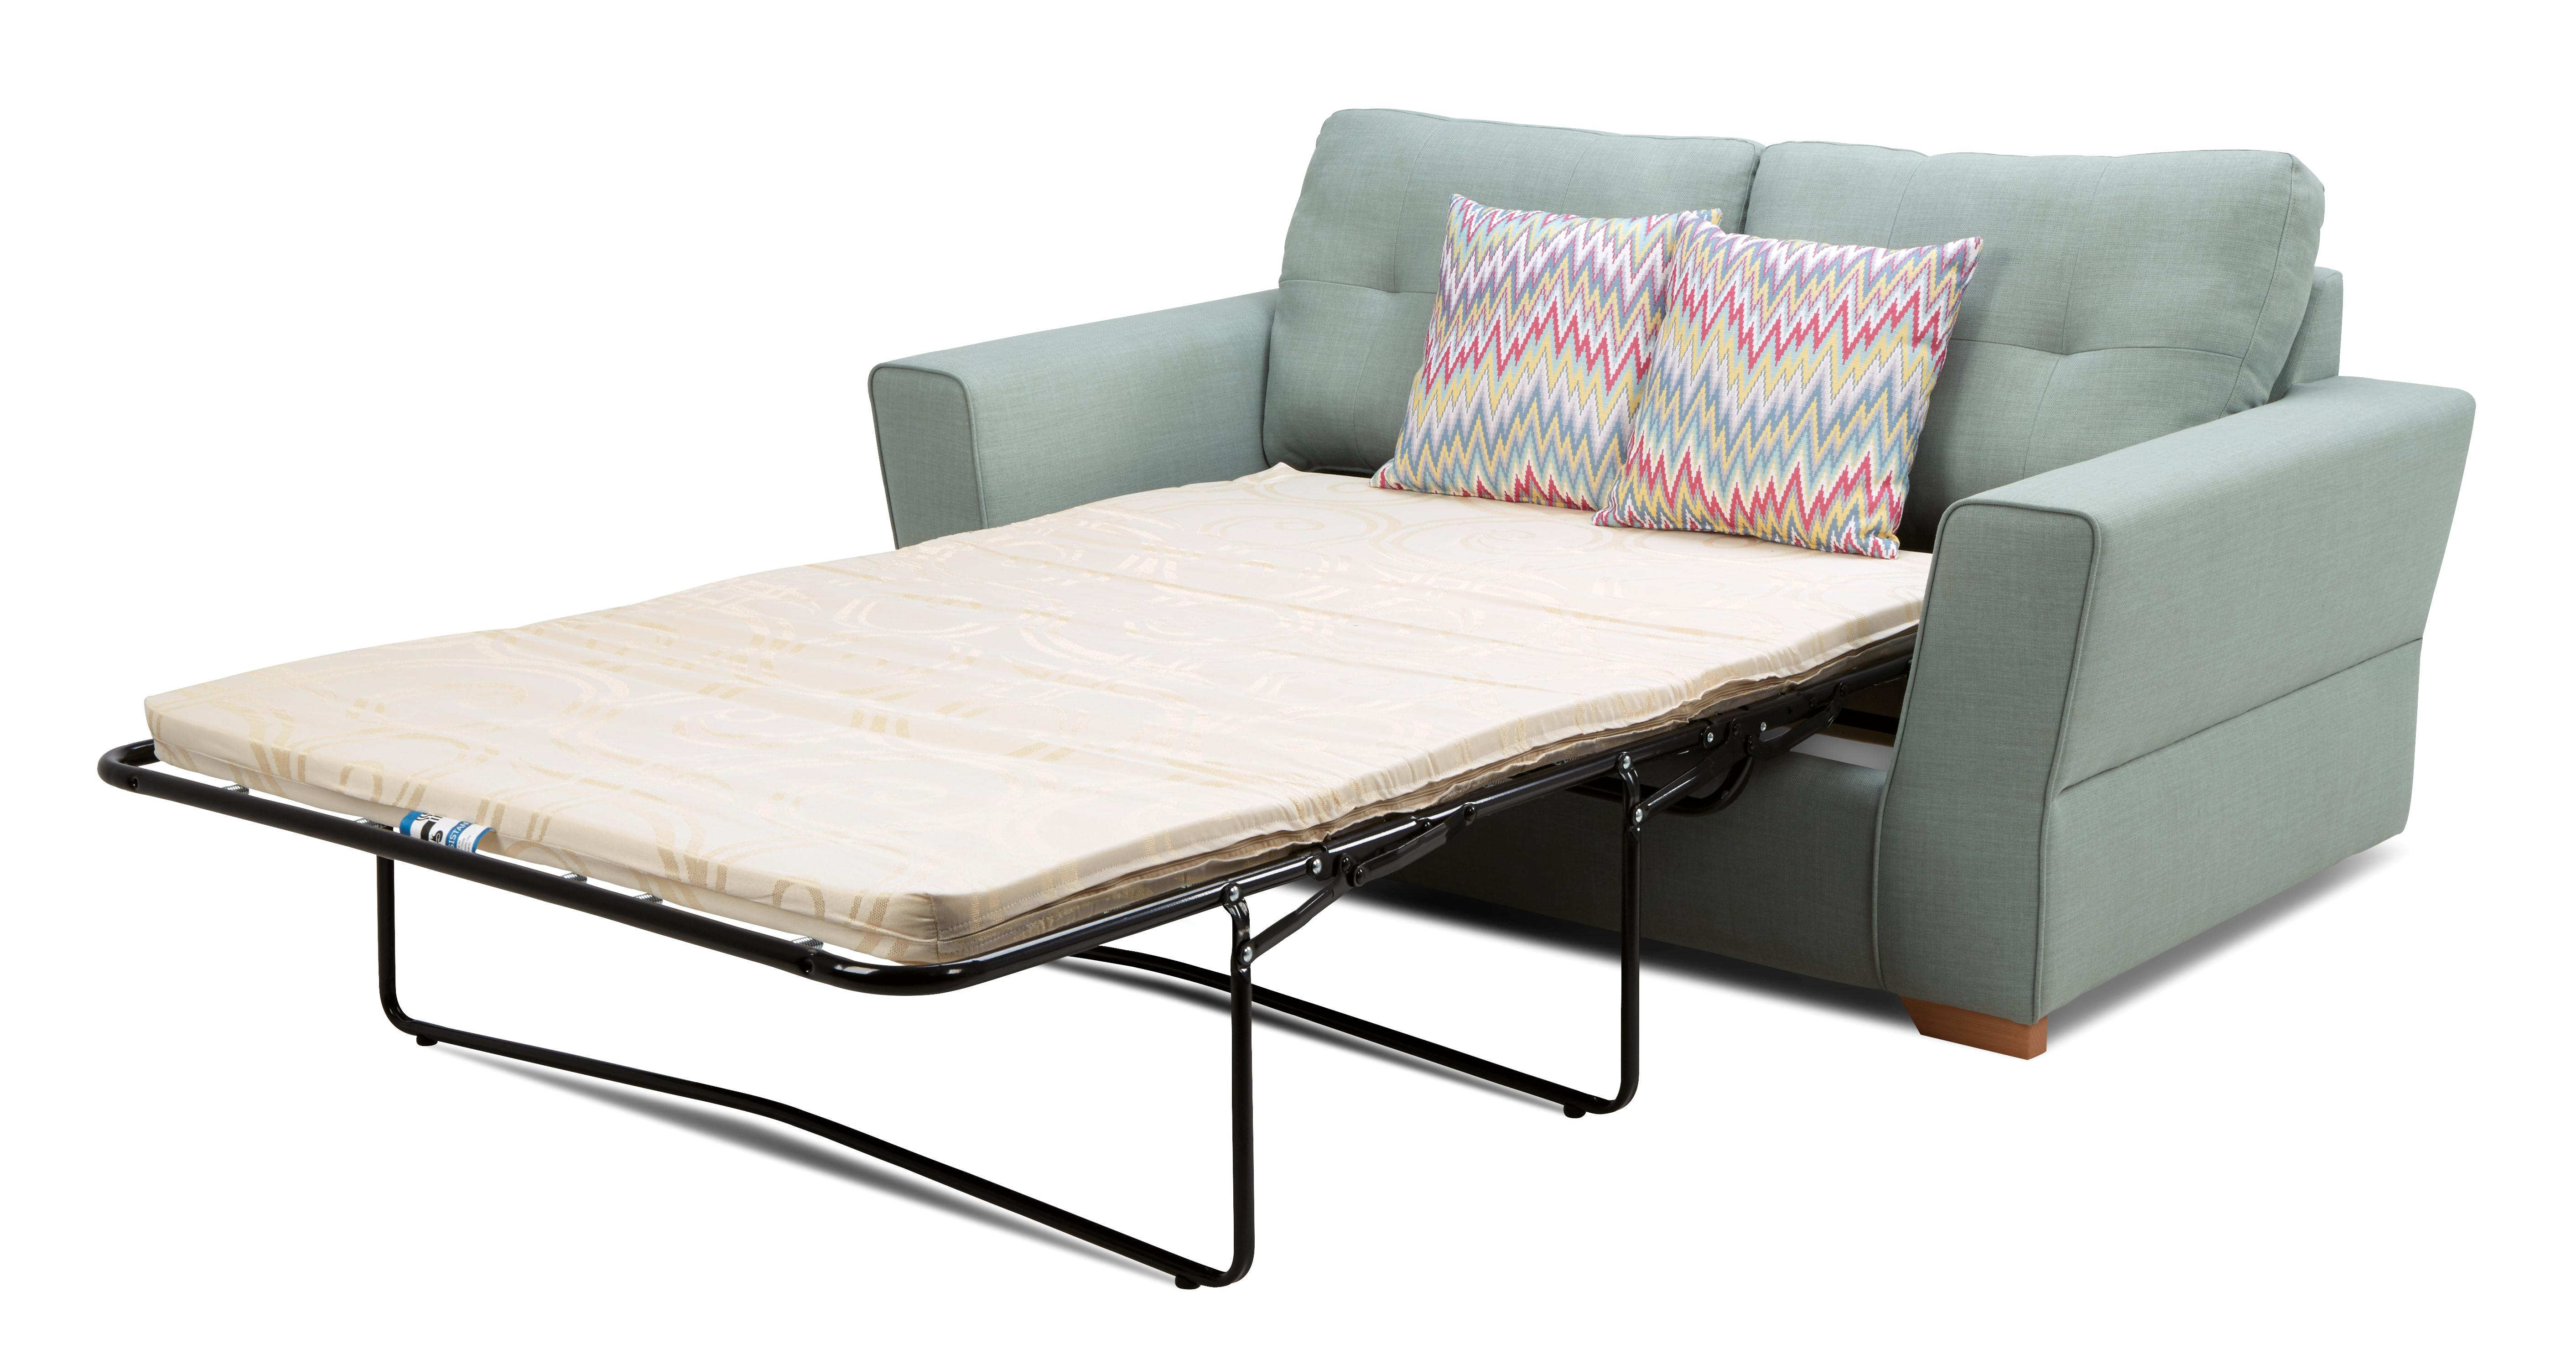 dfs sofas that come apart sofala camping sites sofa bed offers spain trapeze large 2 seater revive